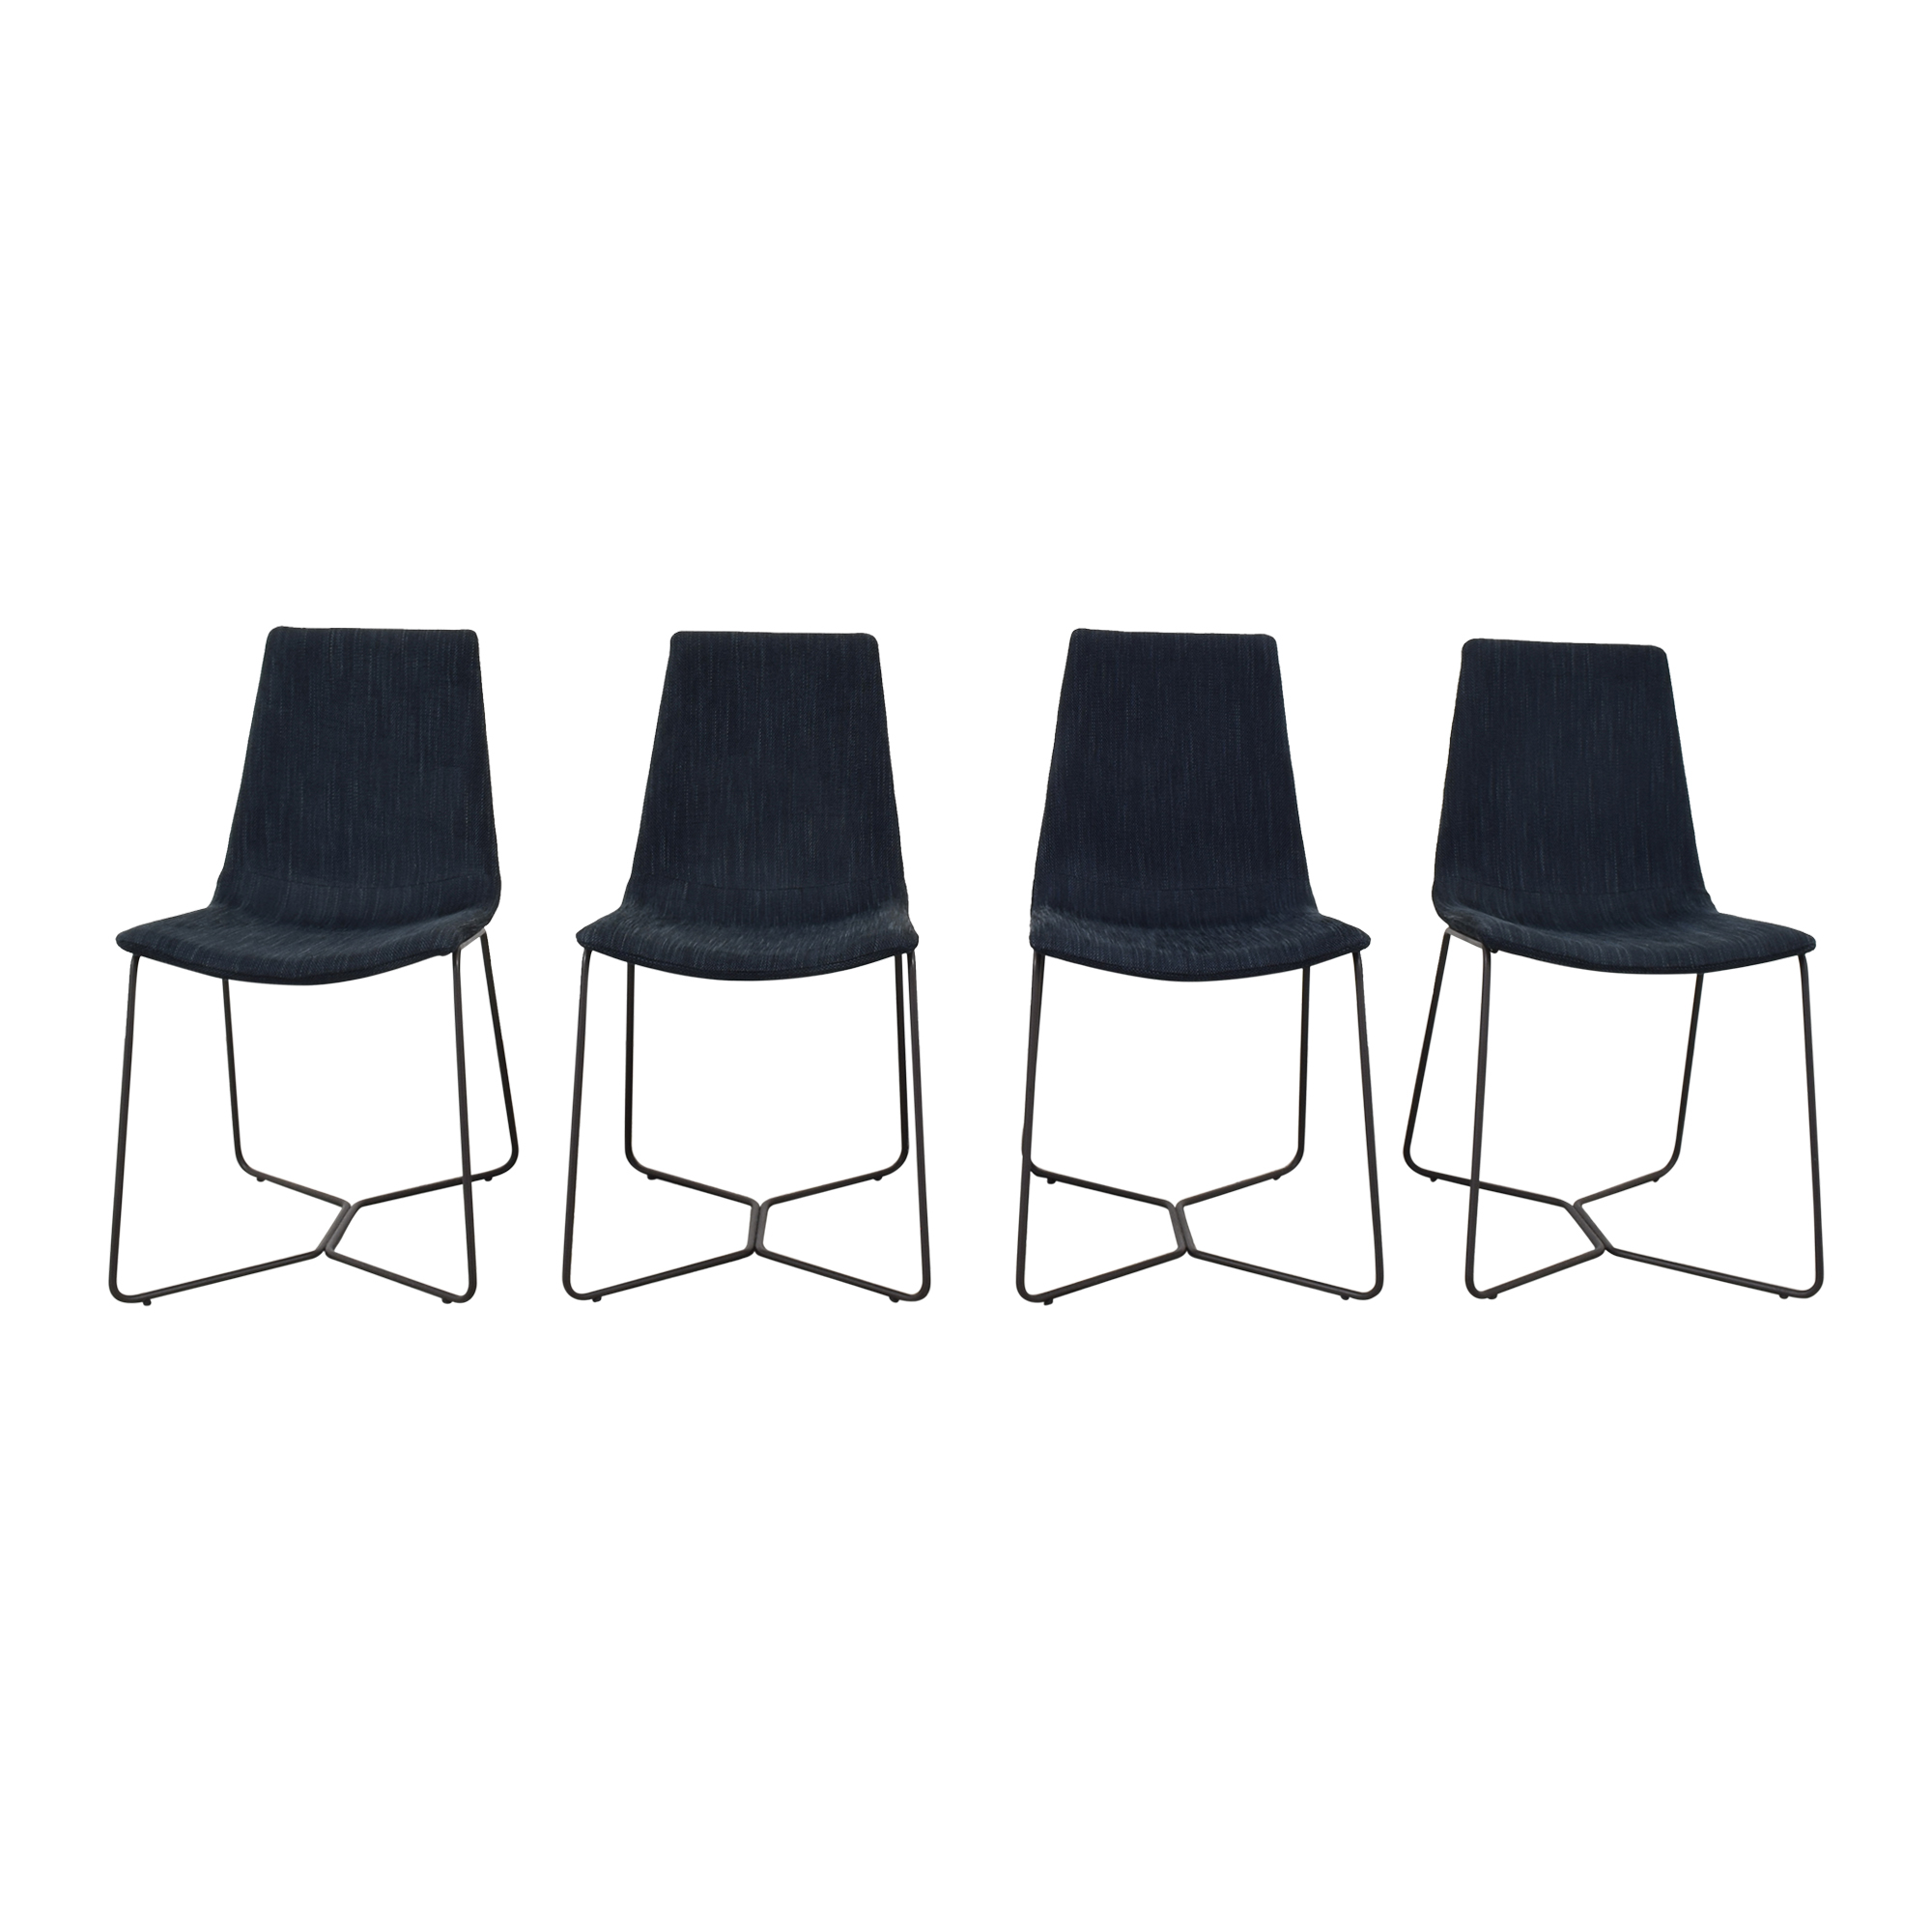 West Elm West Elm Slope Upholstered Dining Chairs ct